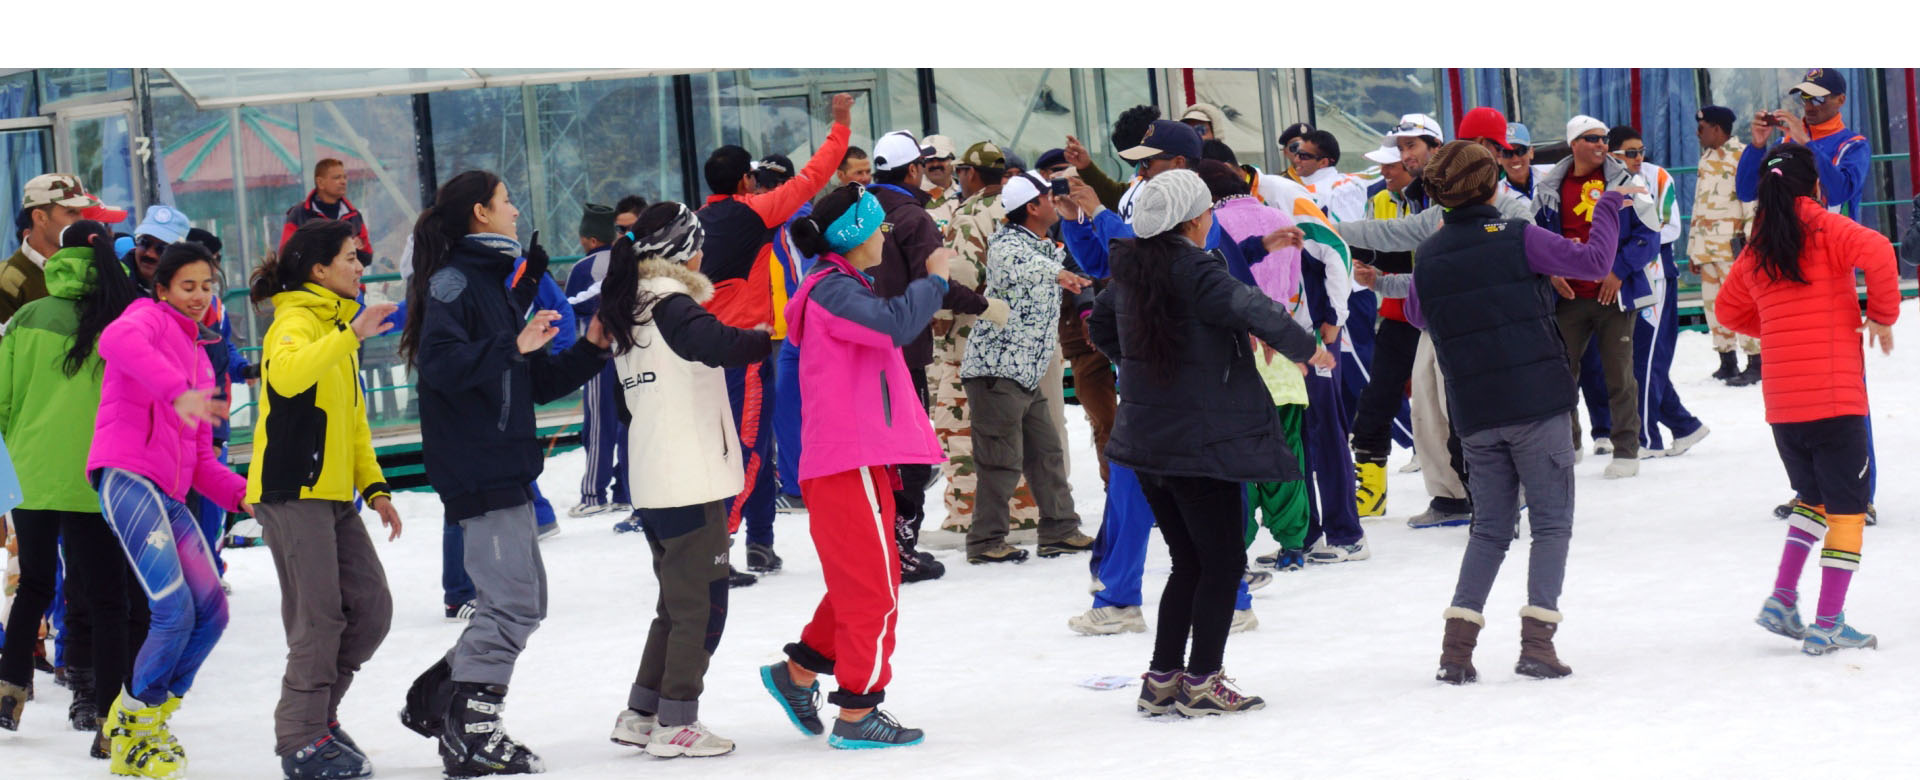 auli-skiing-tour-package